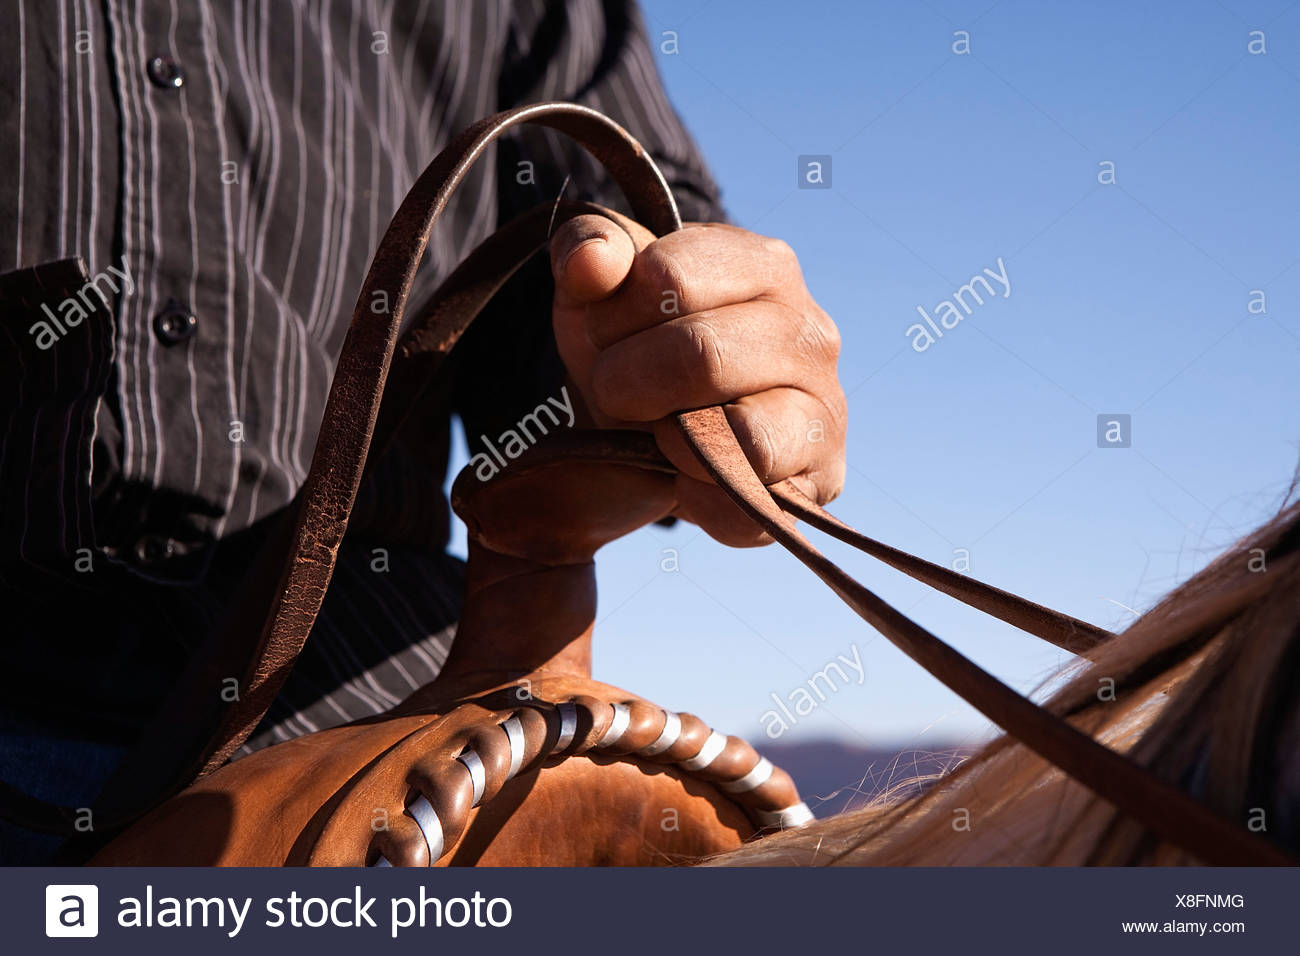 Man holding the reins of horse, close-up, focus on hand - Stock Image